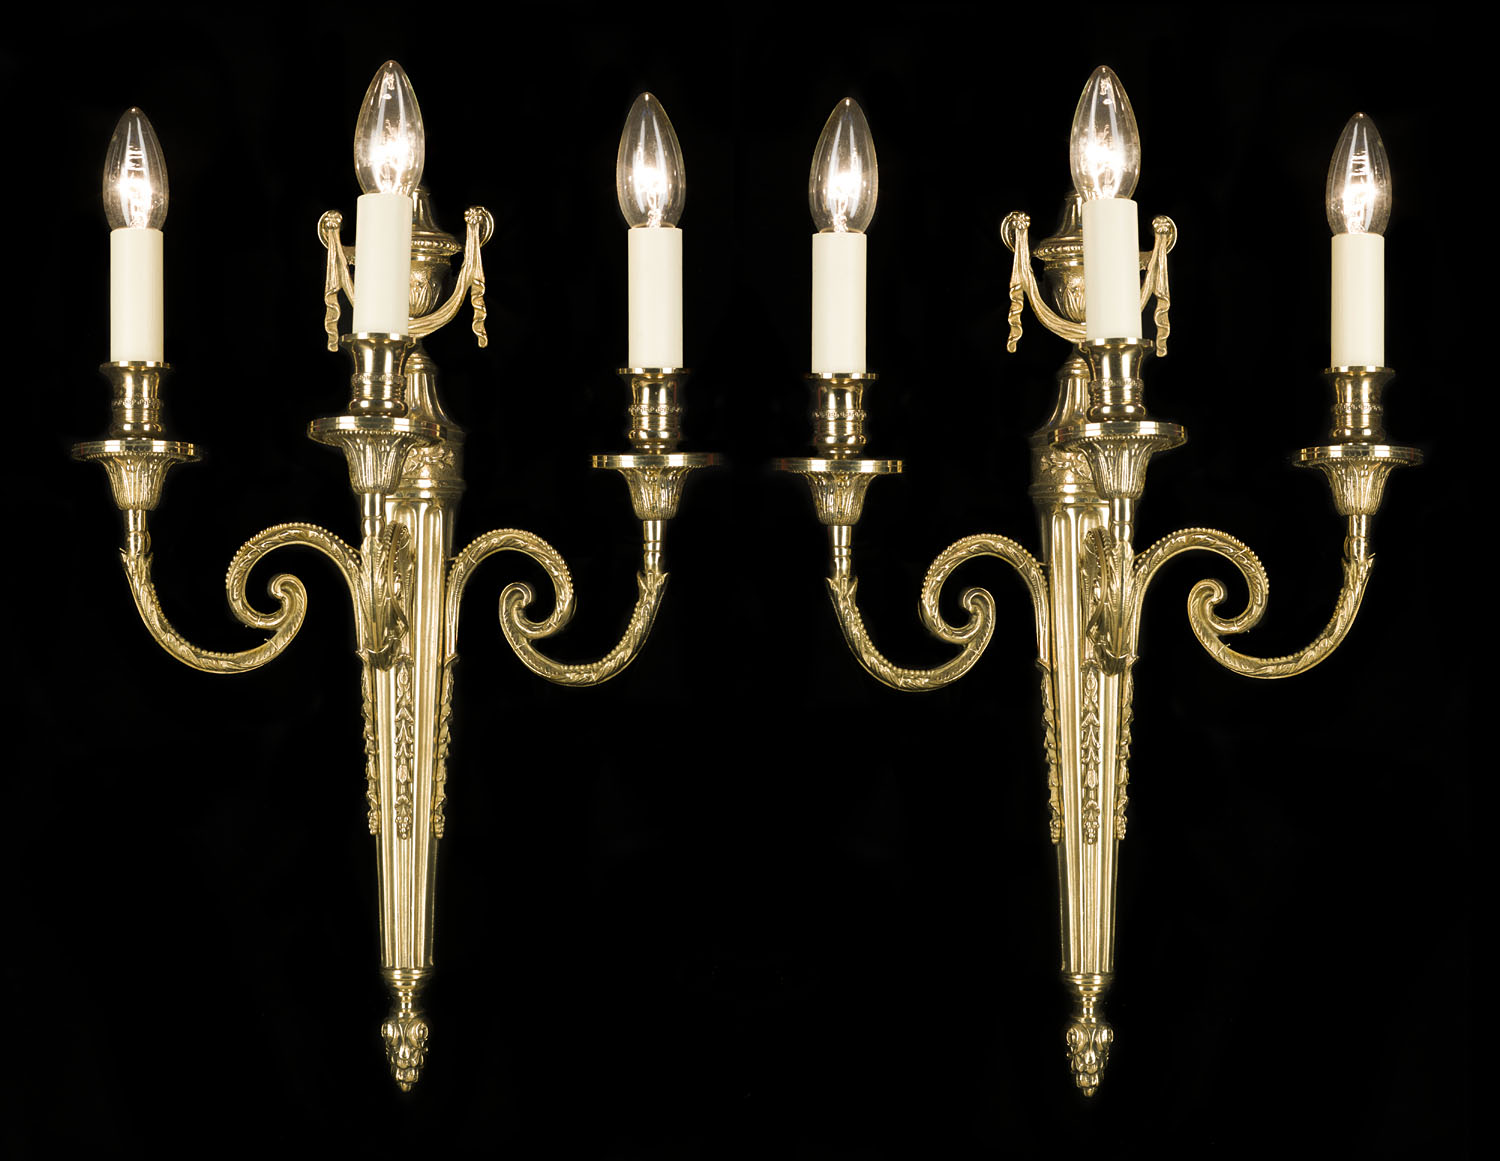 A pair of 20th century Georgian style brass wall lights